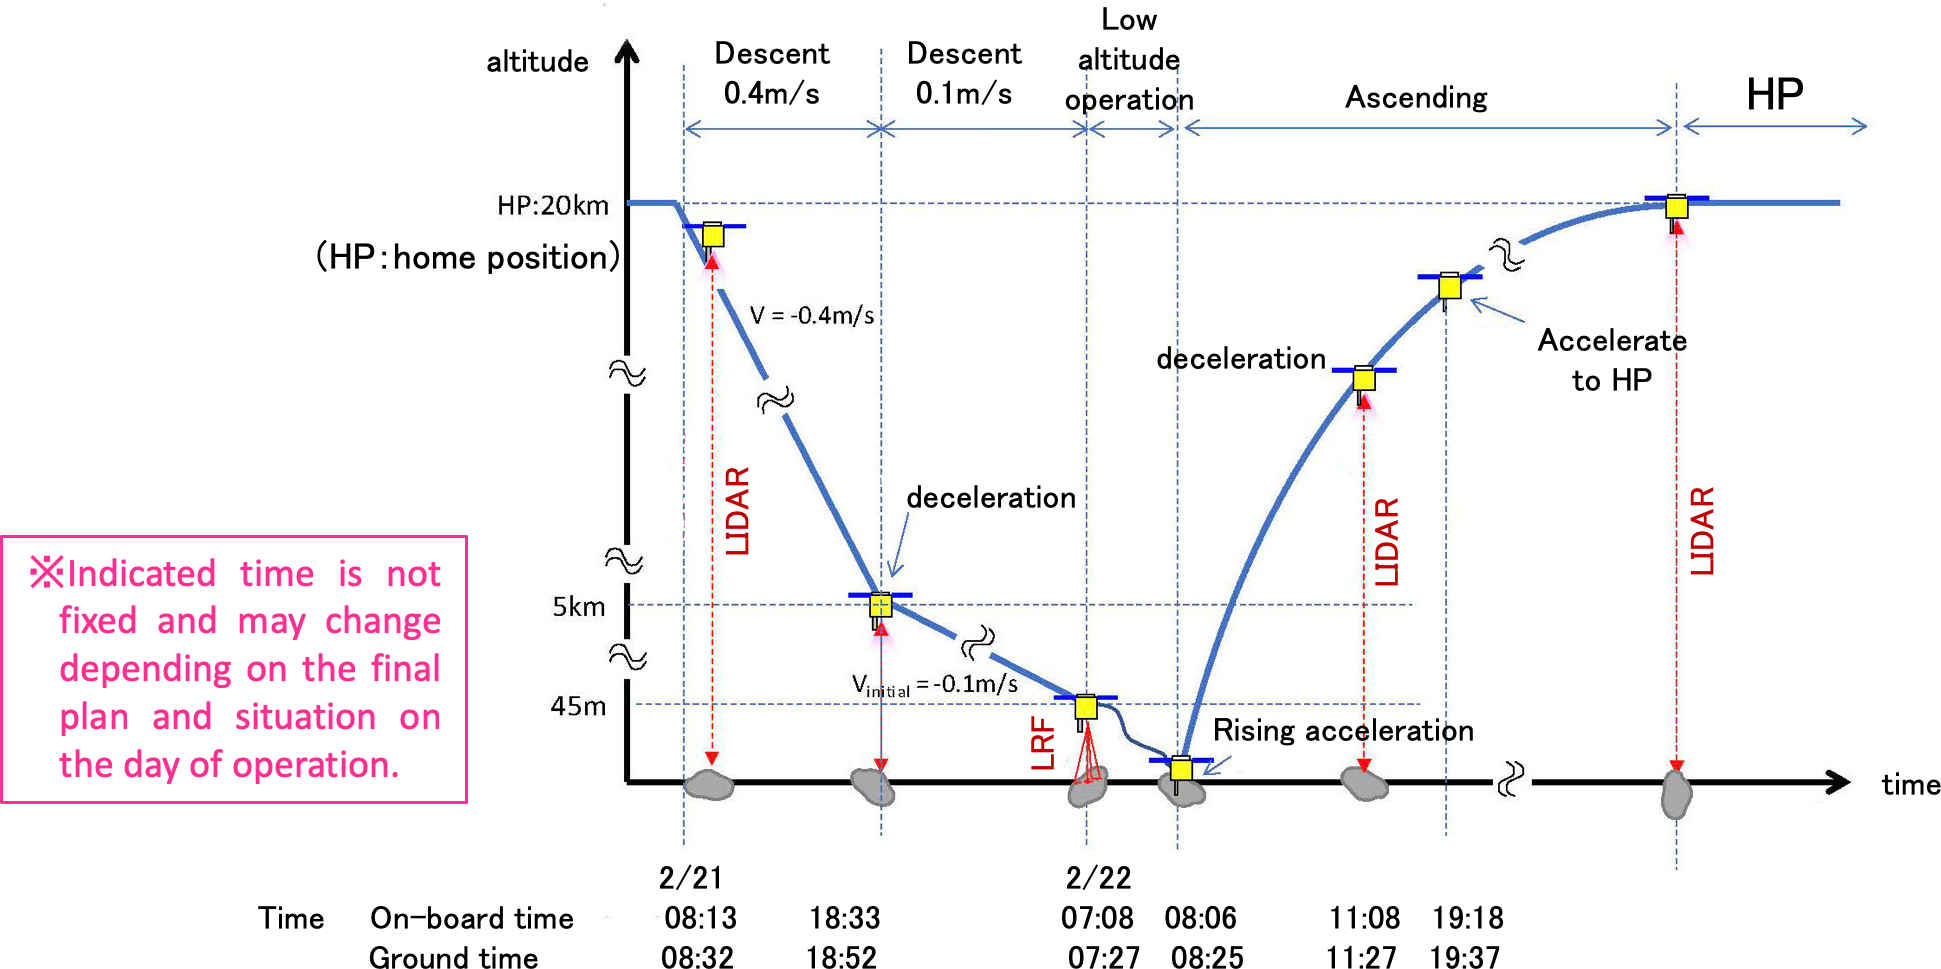 The descent profile Hayabusa2 followed when performing its first surface collection process. Starting from a 20 km orbit, Hayabusa2 descended towards the surface of Ryugu. After slowing the descent around 5 km, Hayabusa2 verified the collection process was good to go around 45 m above the surface. The collection process took only a few seconds before ascending back towards a safe orbit. Credit: JAXA.